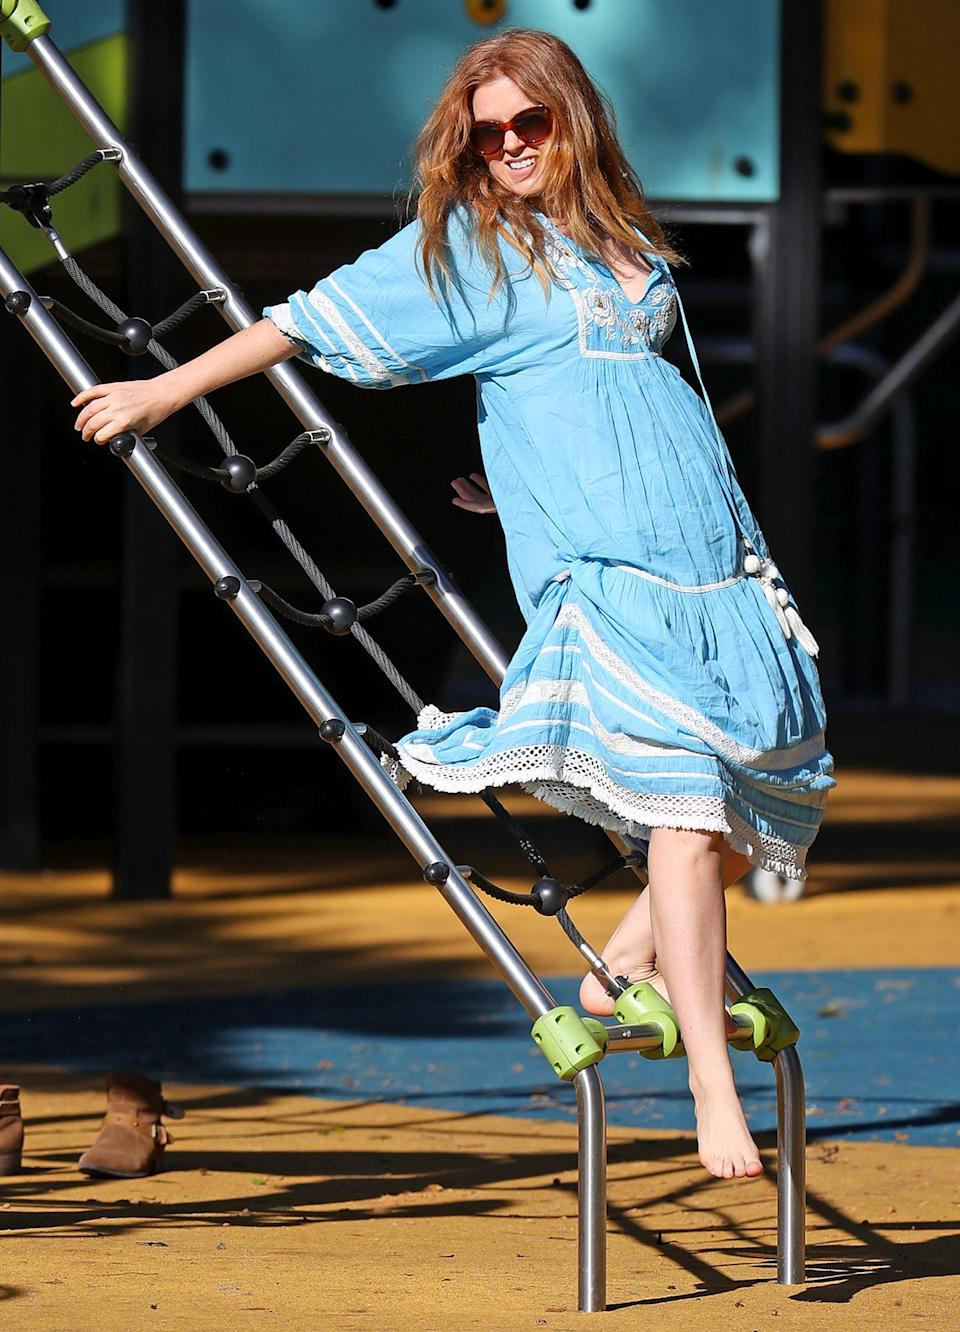 <p>Isla Fisher has a little fun at the local playground in Sydney, Australia on Monday.</p>